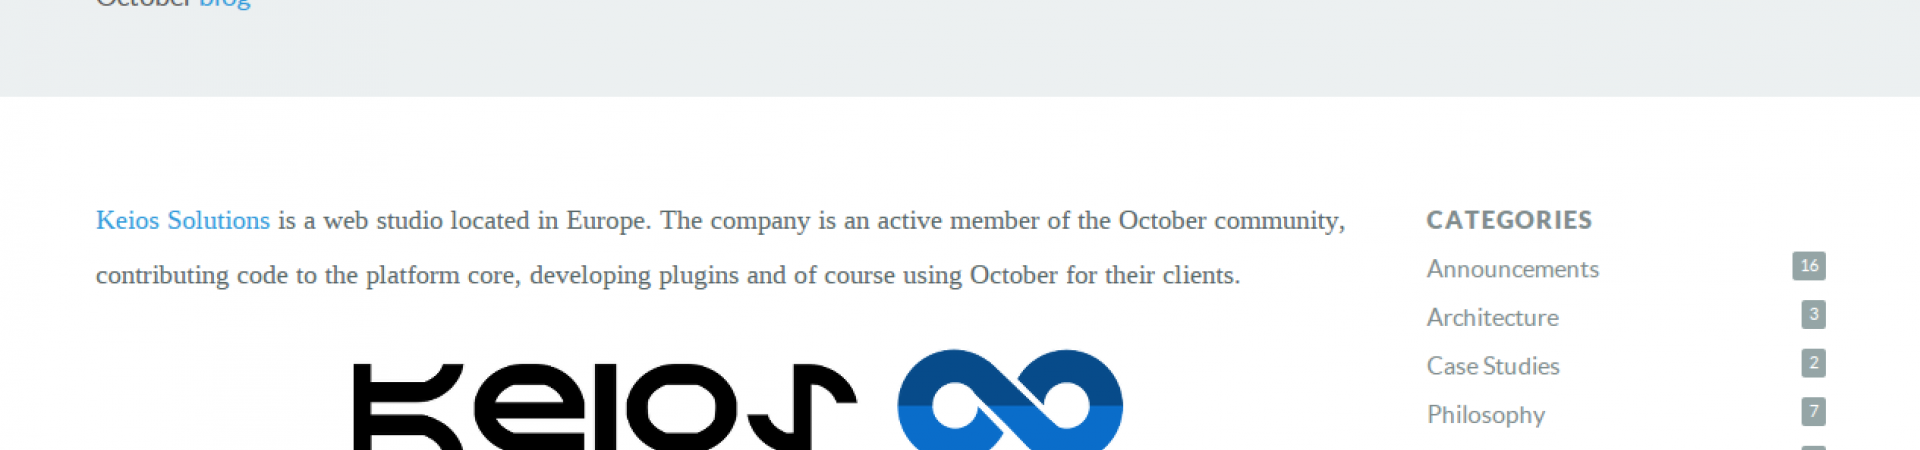 Keios Solutions @ OctoberCMS blog